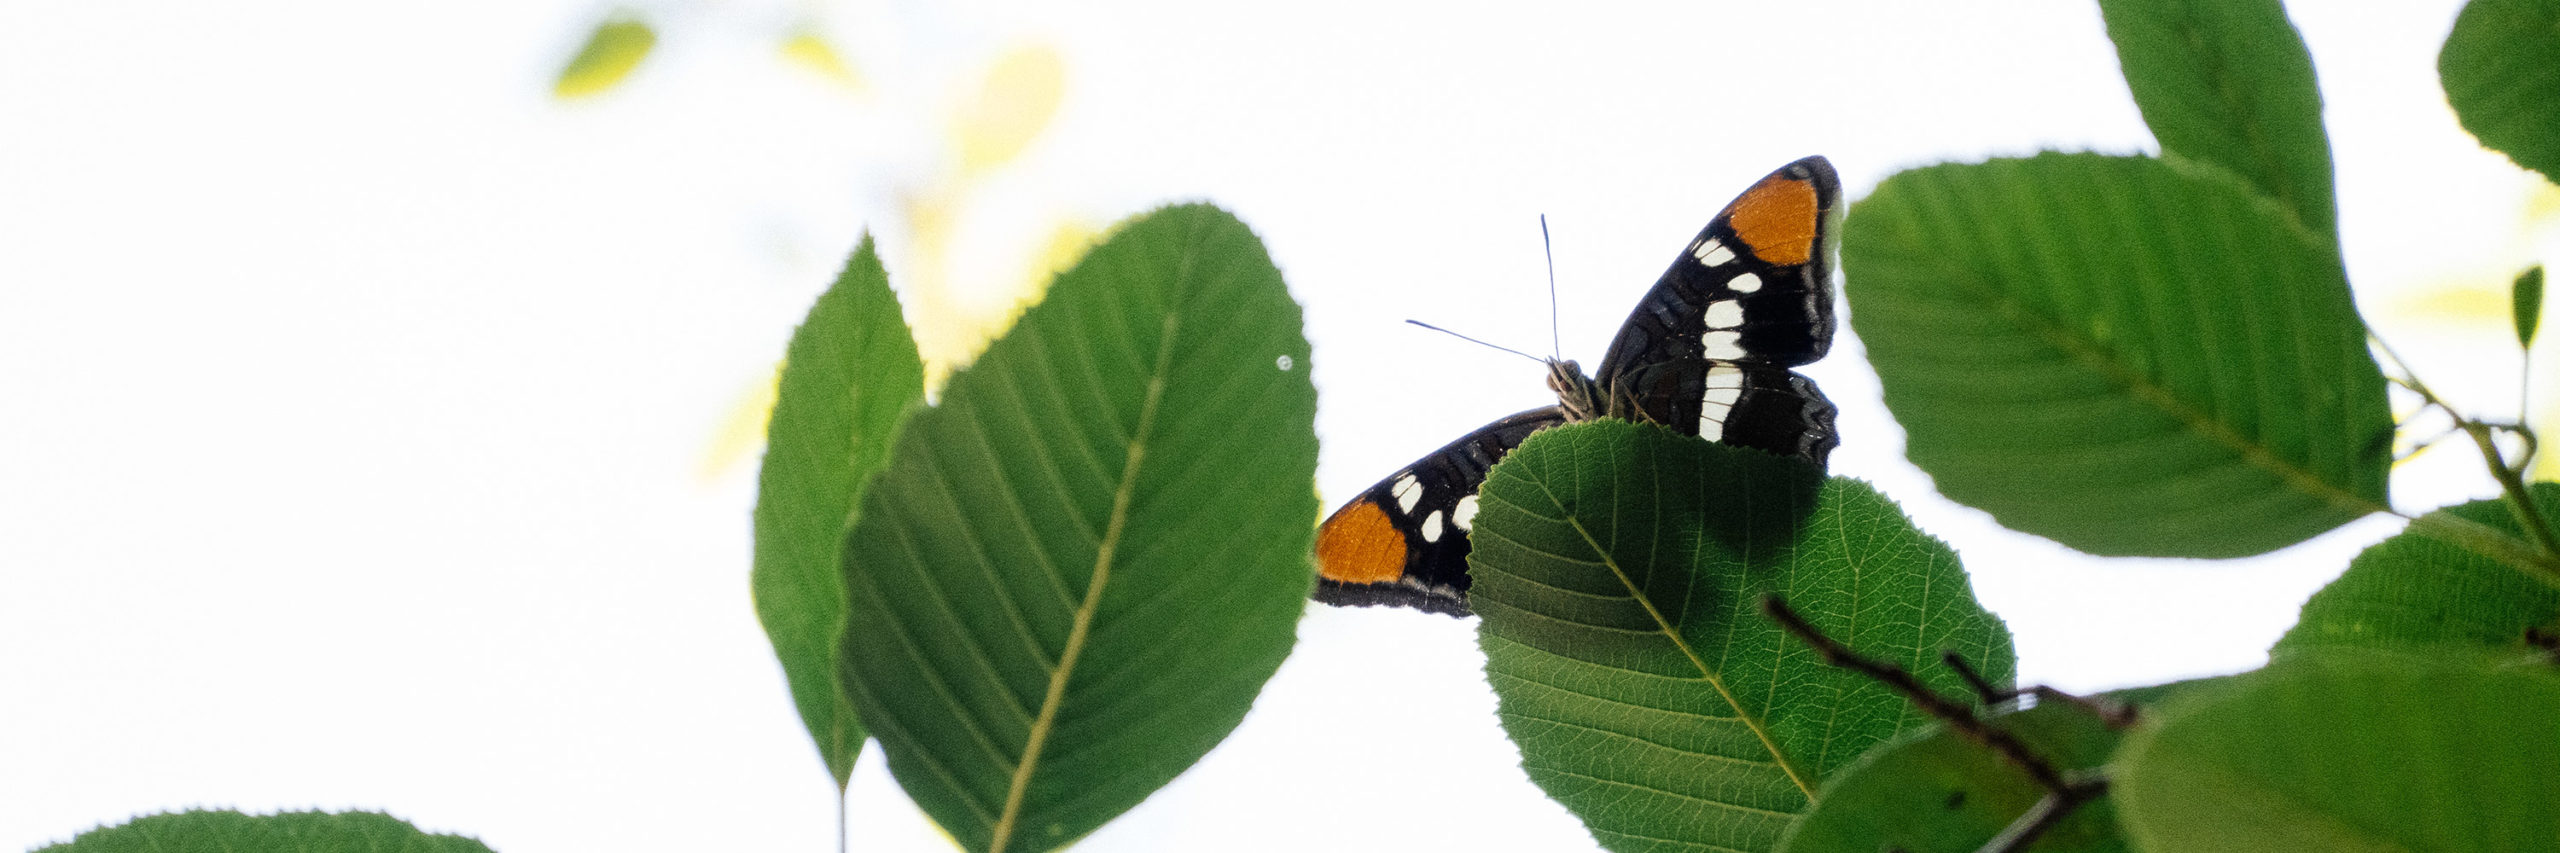 A butterfly rests on a branch of a tree, surrounded by leaves backlit by the sun